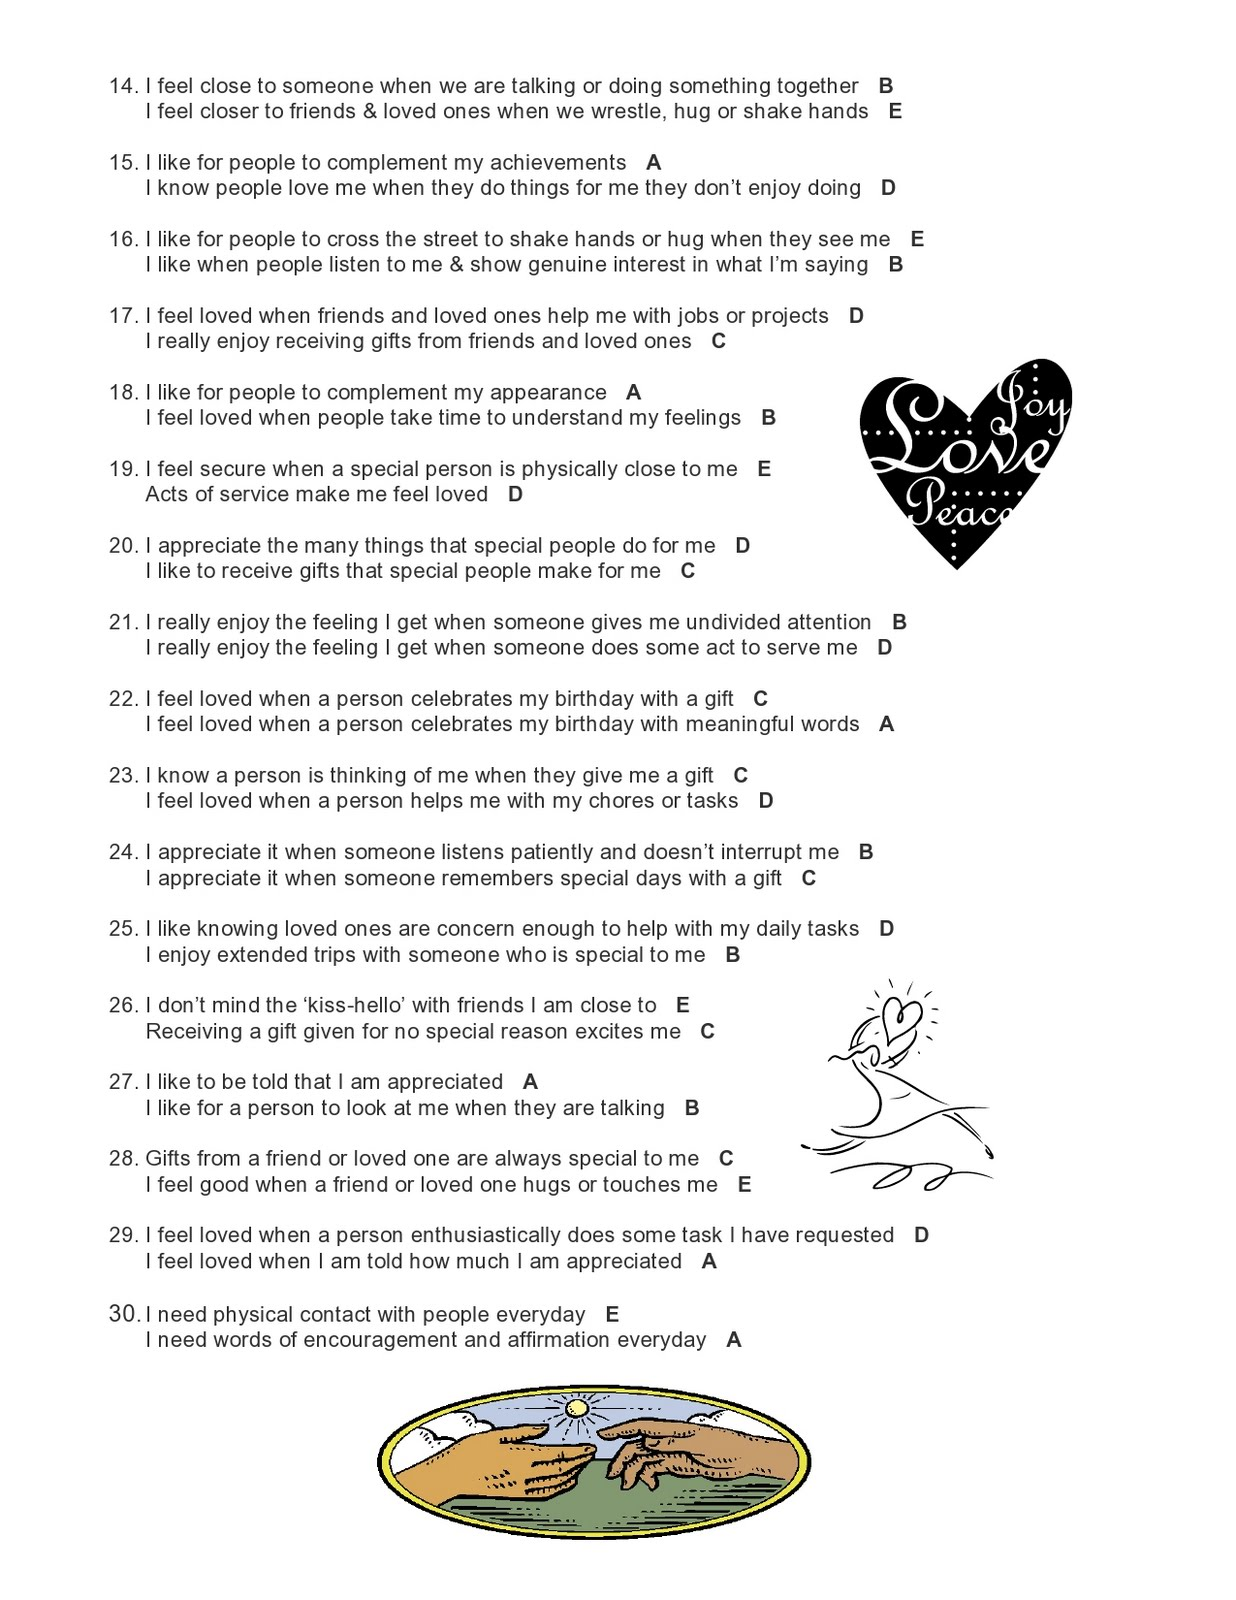 worksheet Forgiveness Worksheets self forgiveness worksheets abitlikethis for 2 3 year olds free download printable on